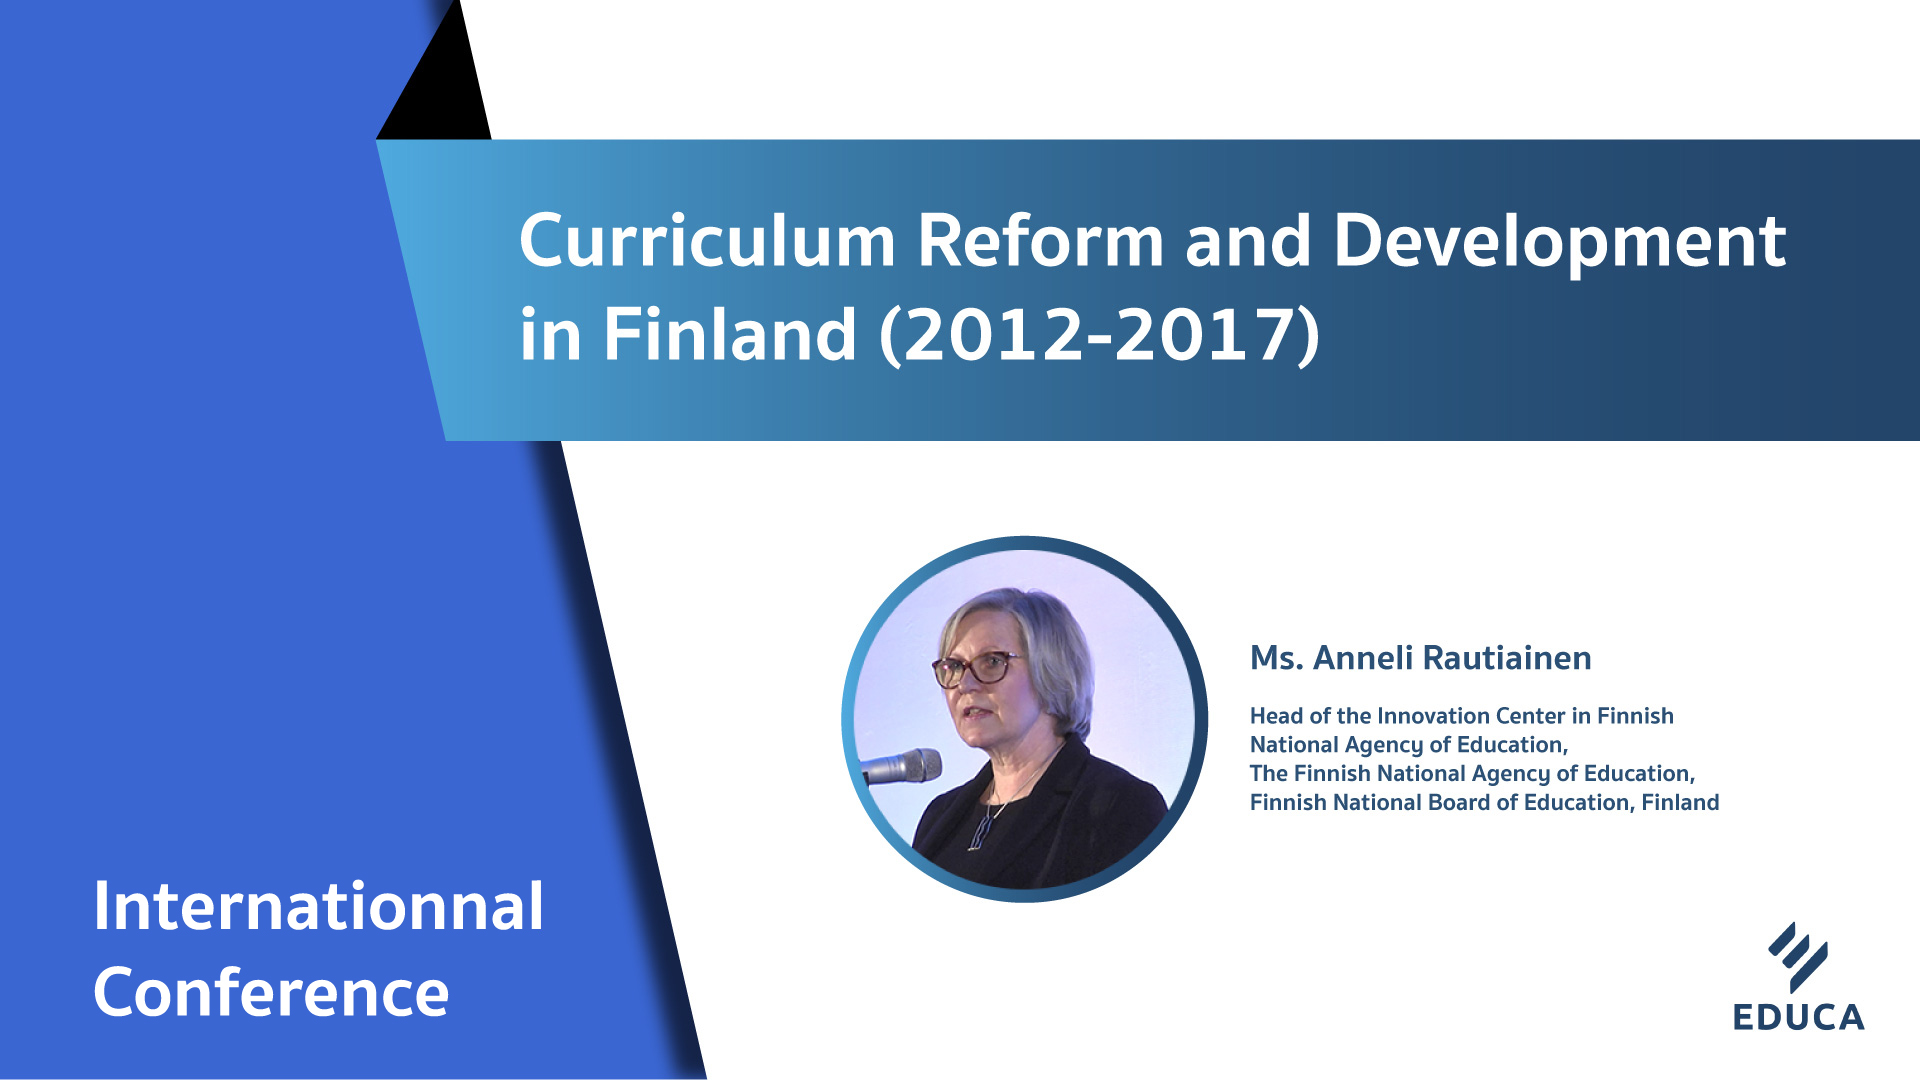 Curriculum Reform and Development in Finland (2012-2017)